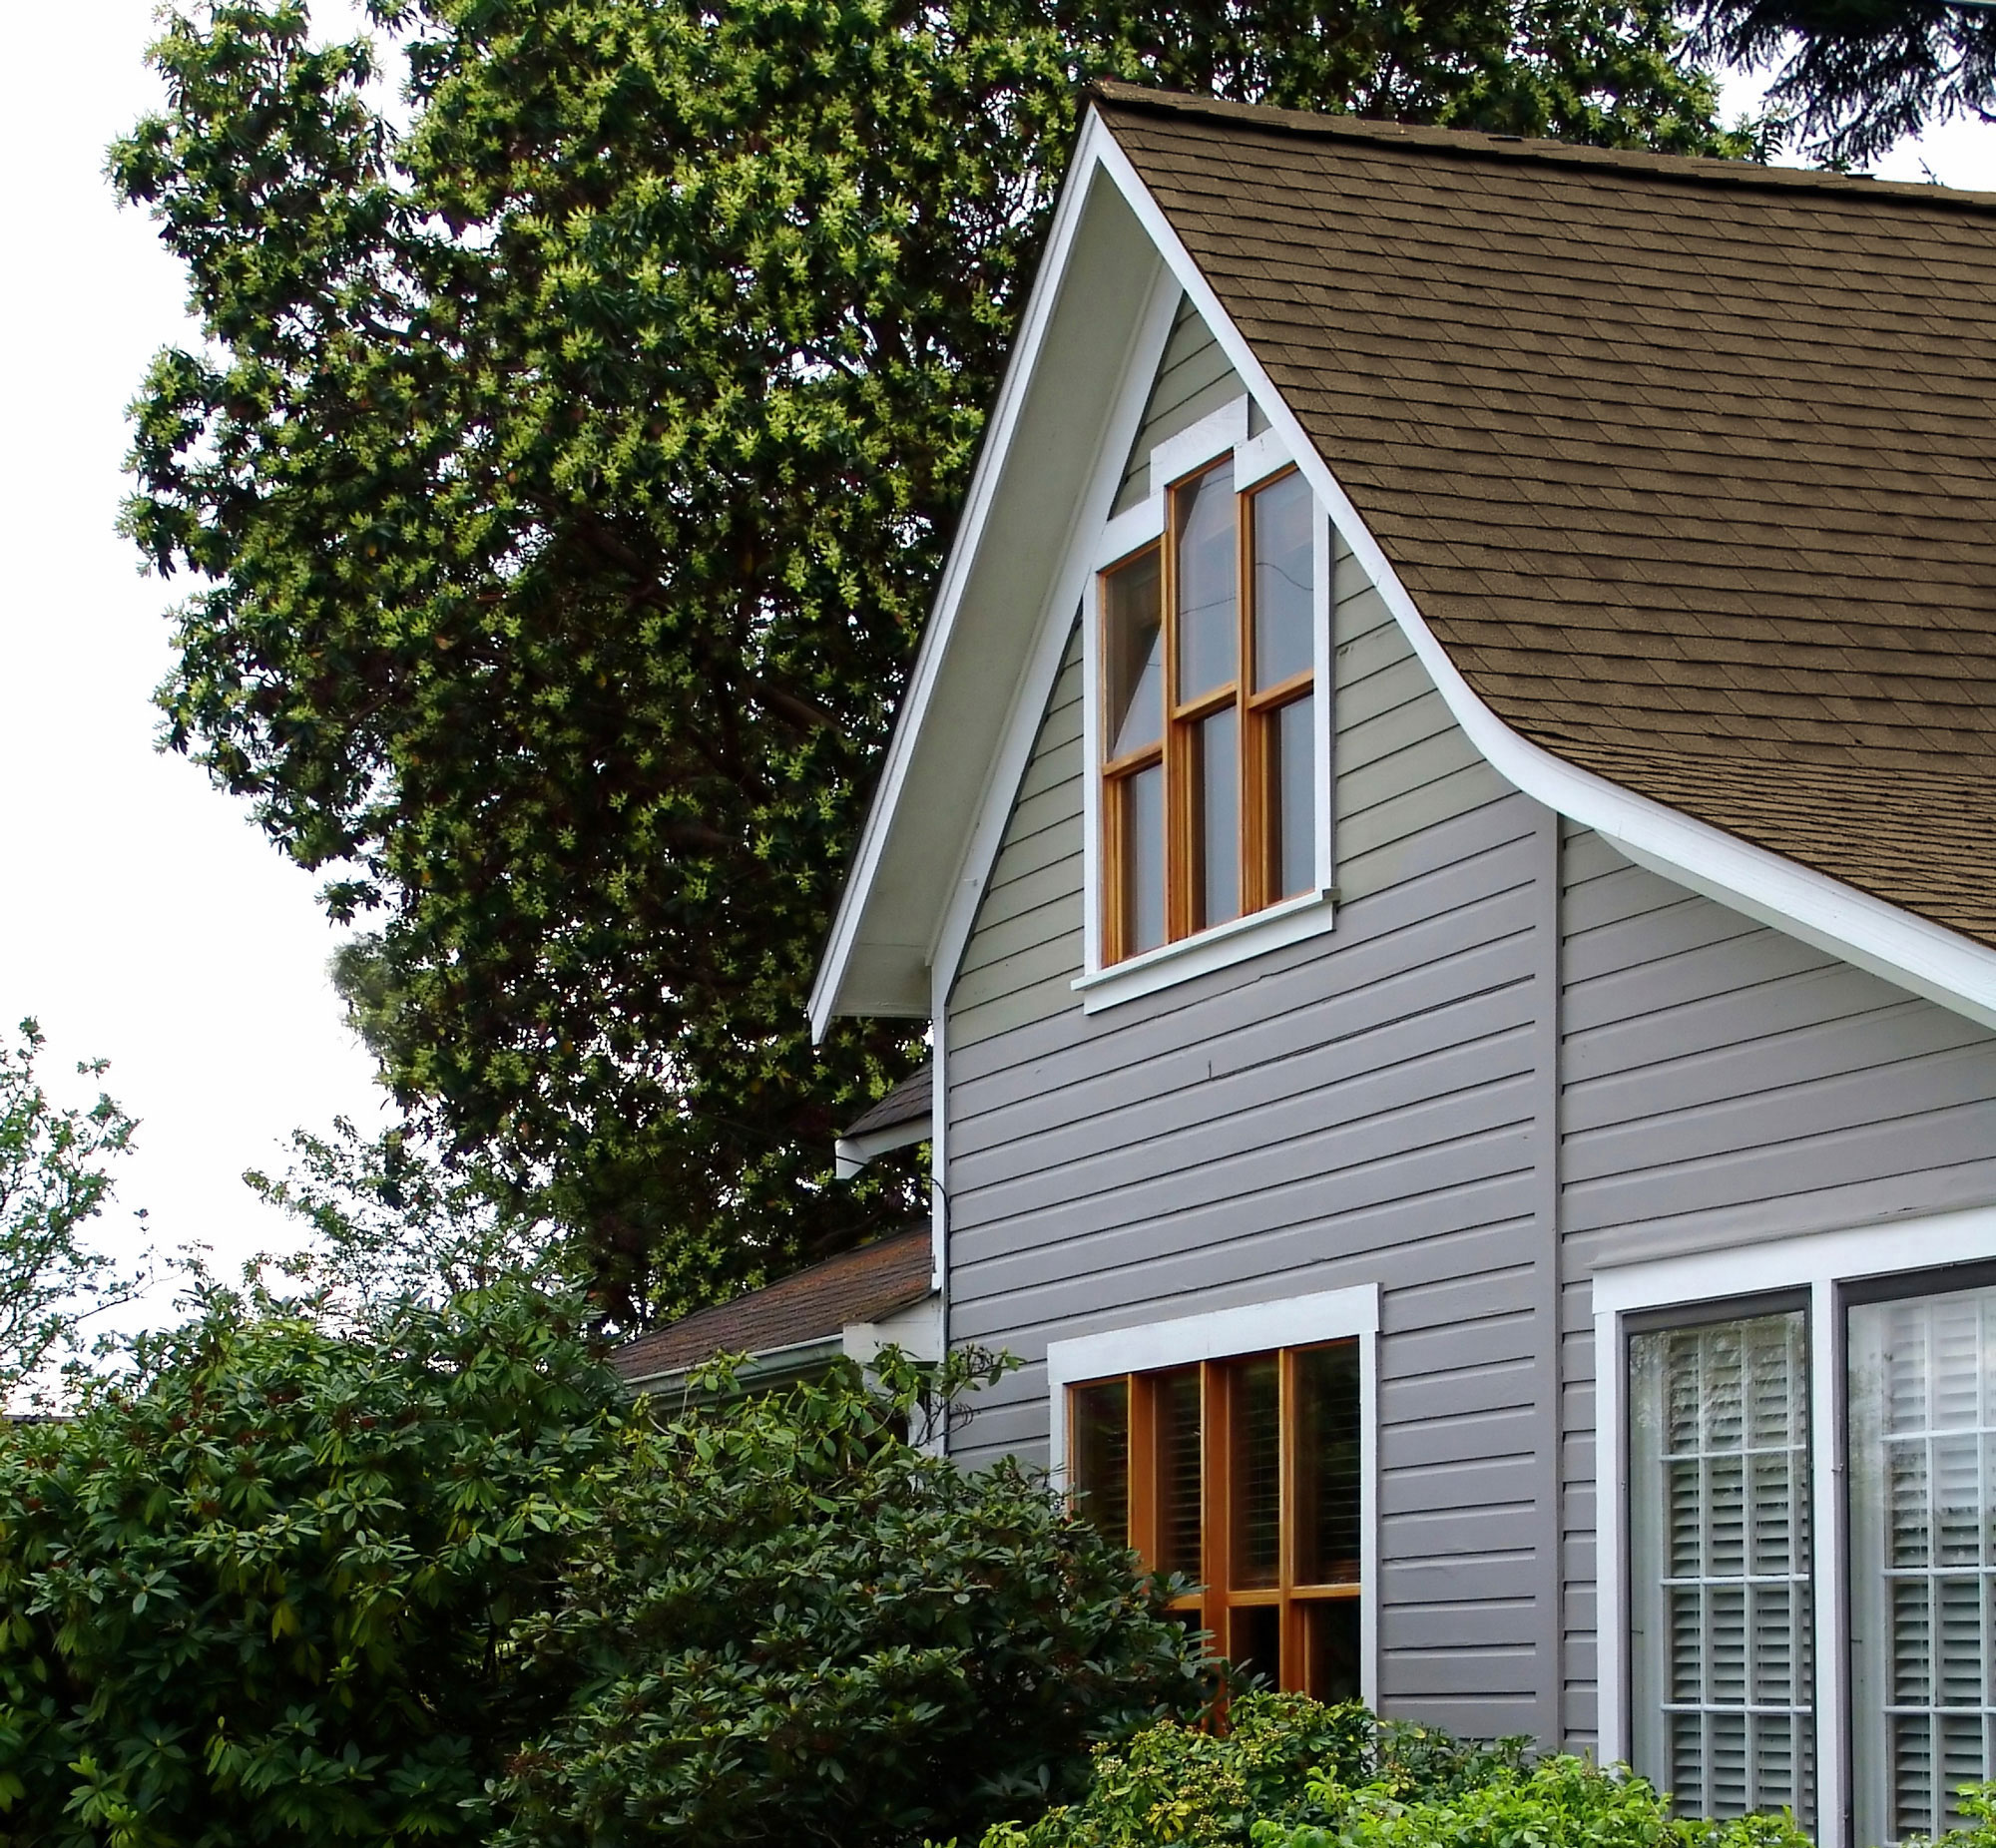 ... Side Of Gray House With Brown Shingle Roof